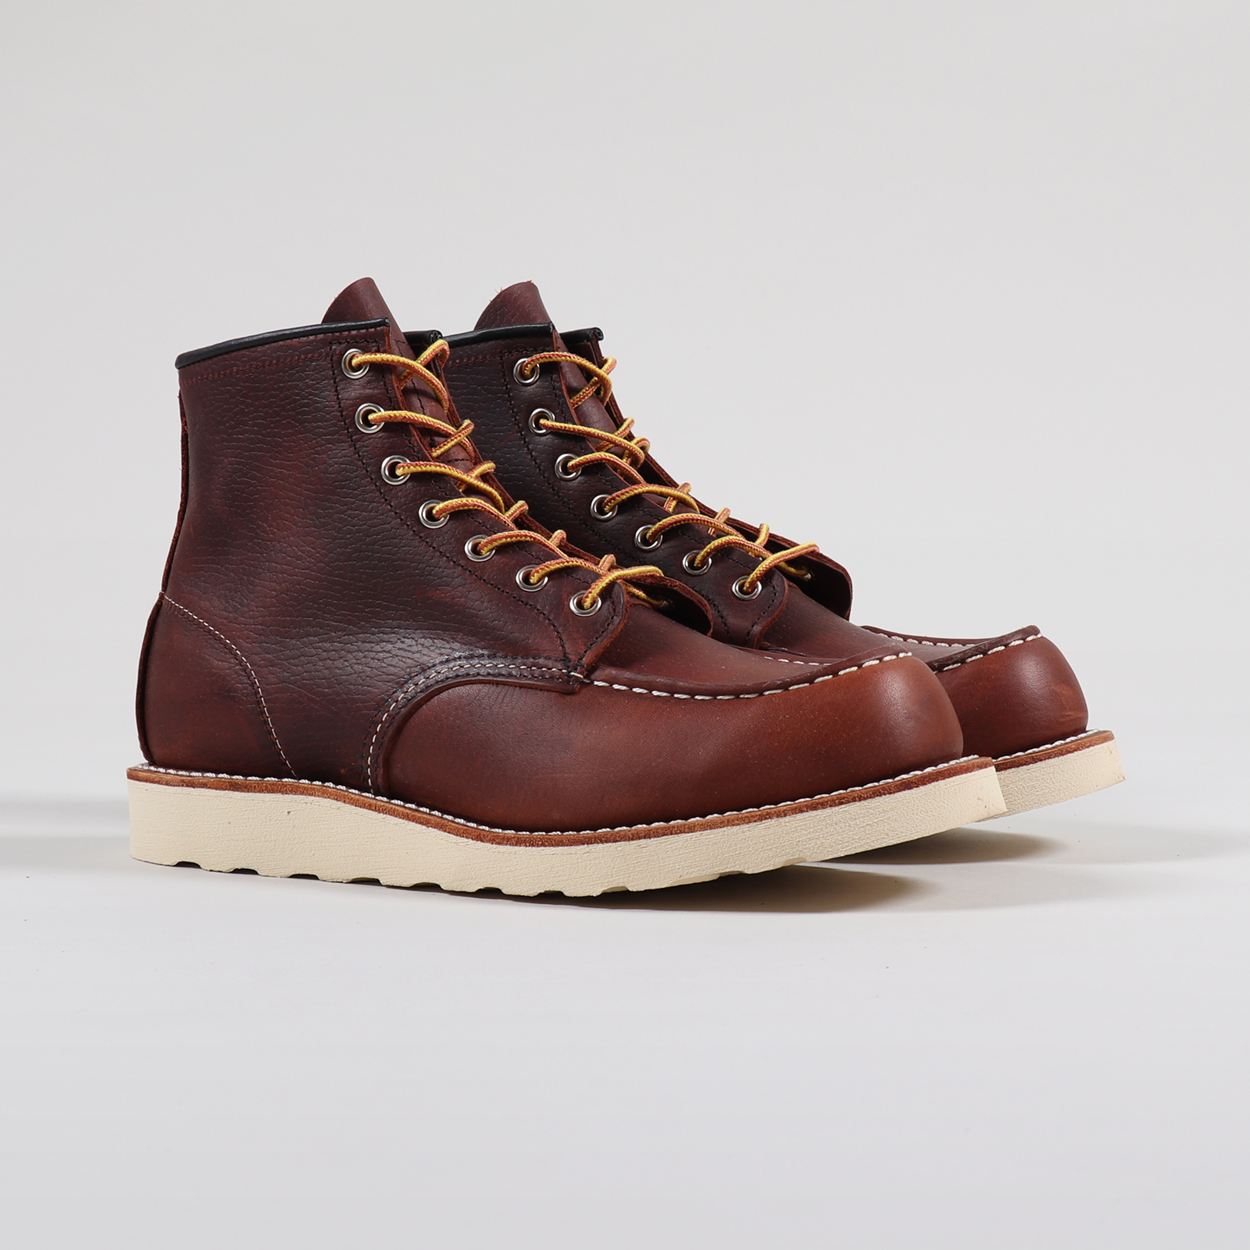 Red Wing Classic Moc Toe Boots Brown